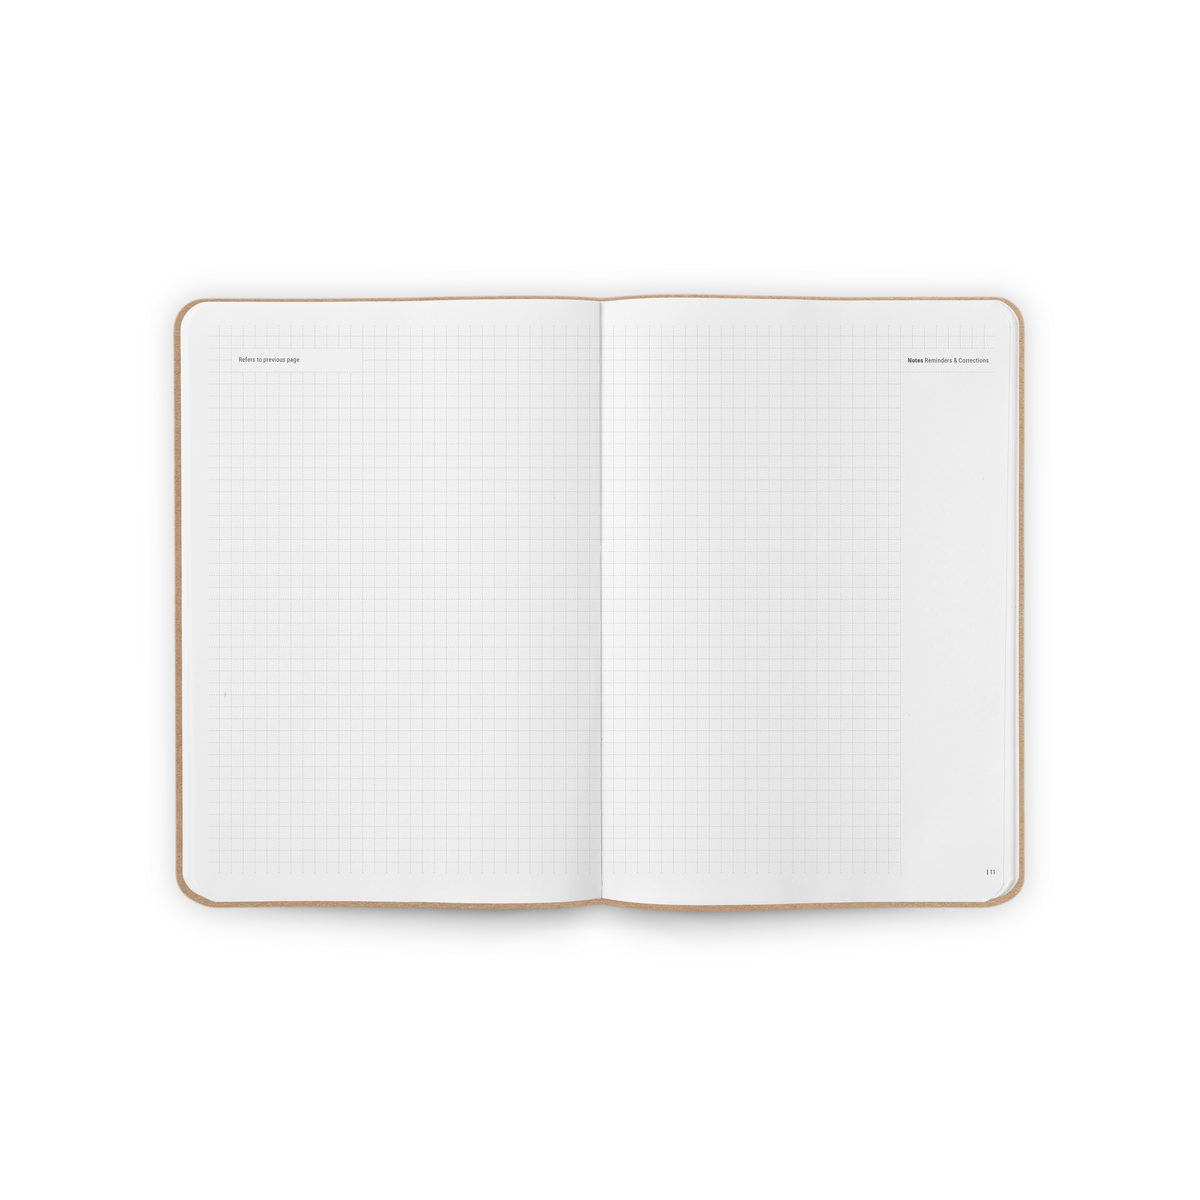 B-107_Blogger-Stationery_Notebook_Spread2